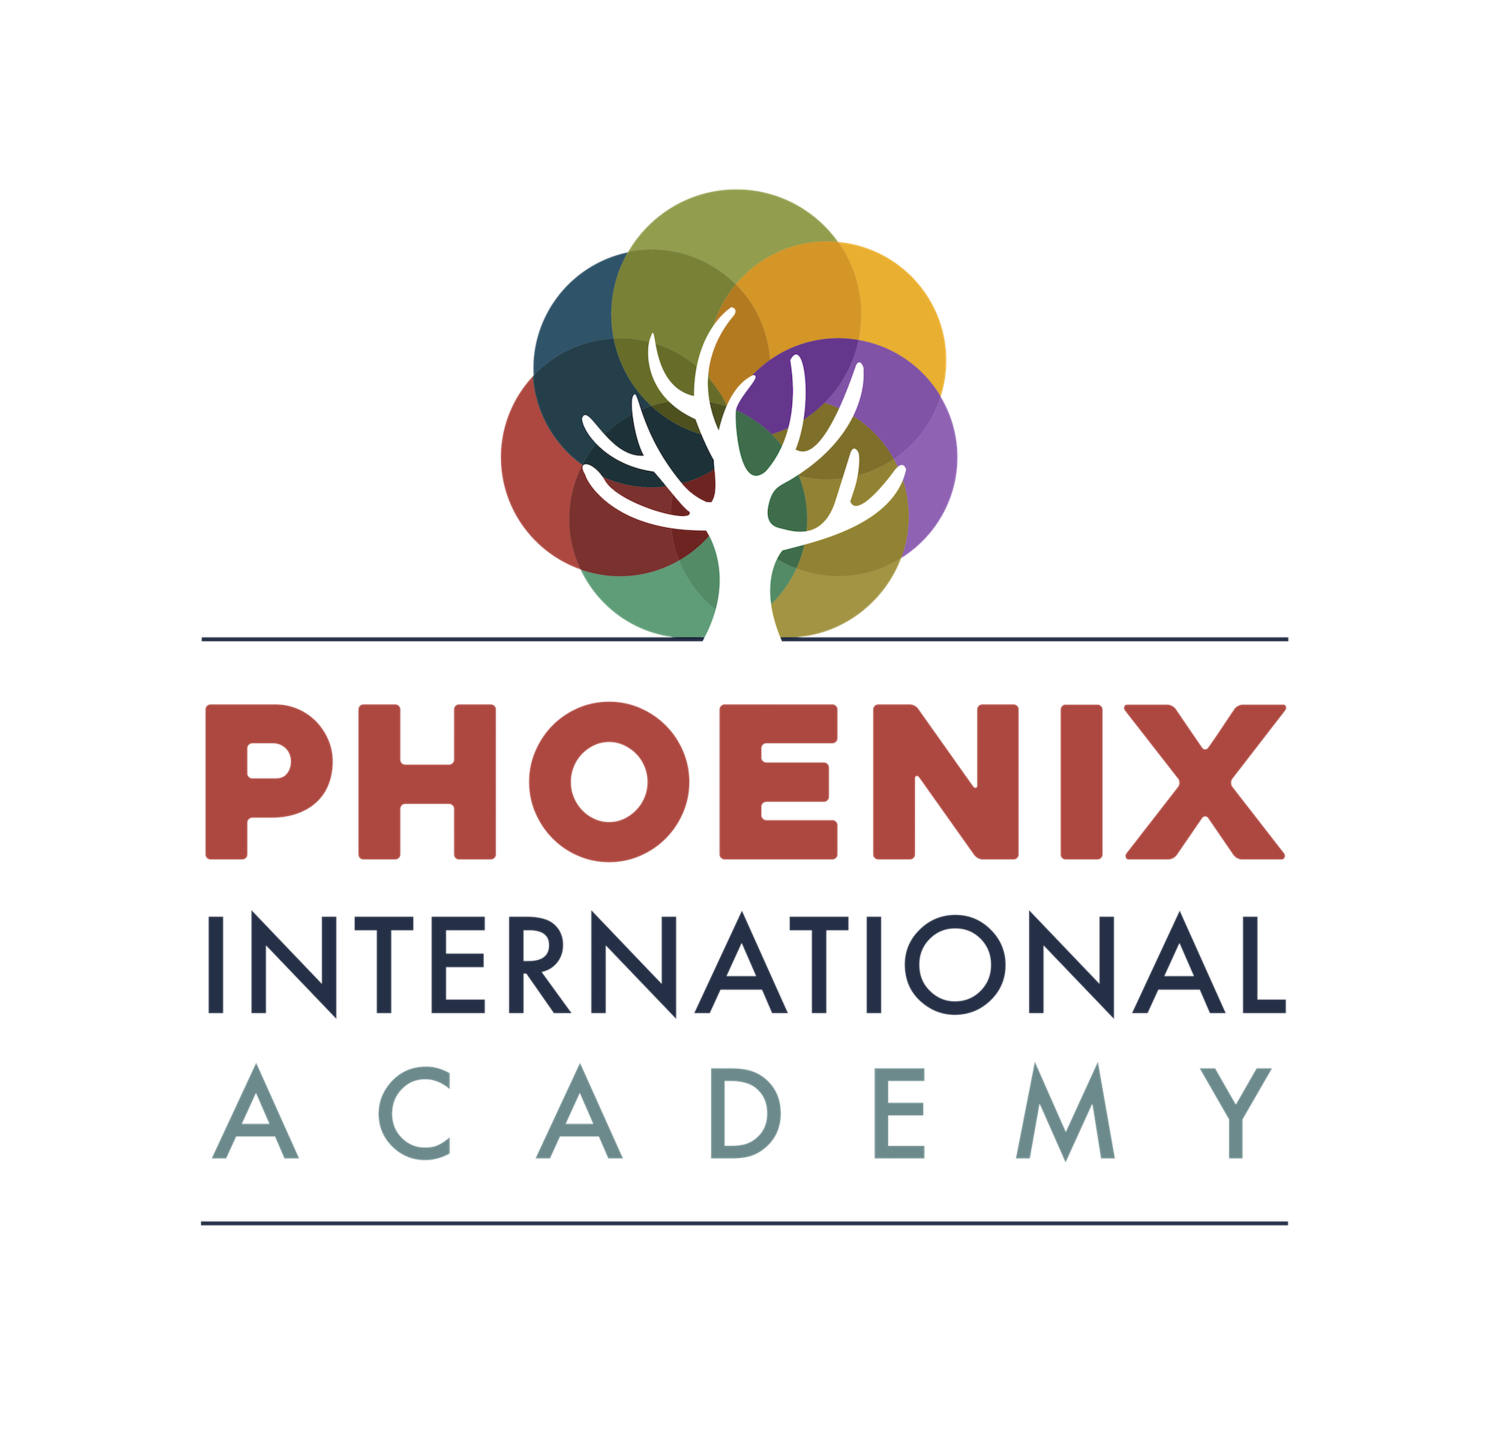 Phoenix International Academy - Innovative School in South Phoenix